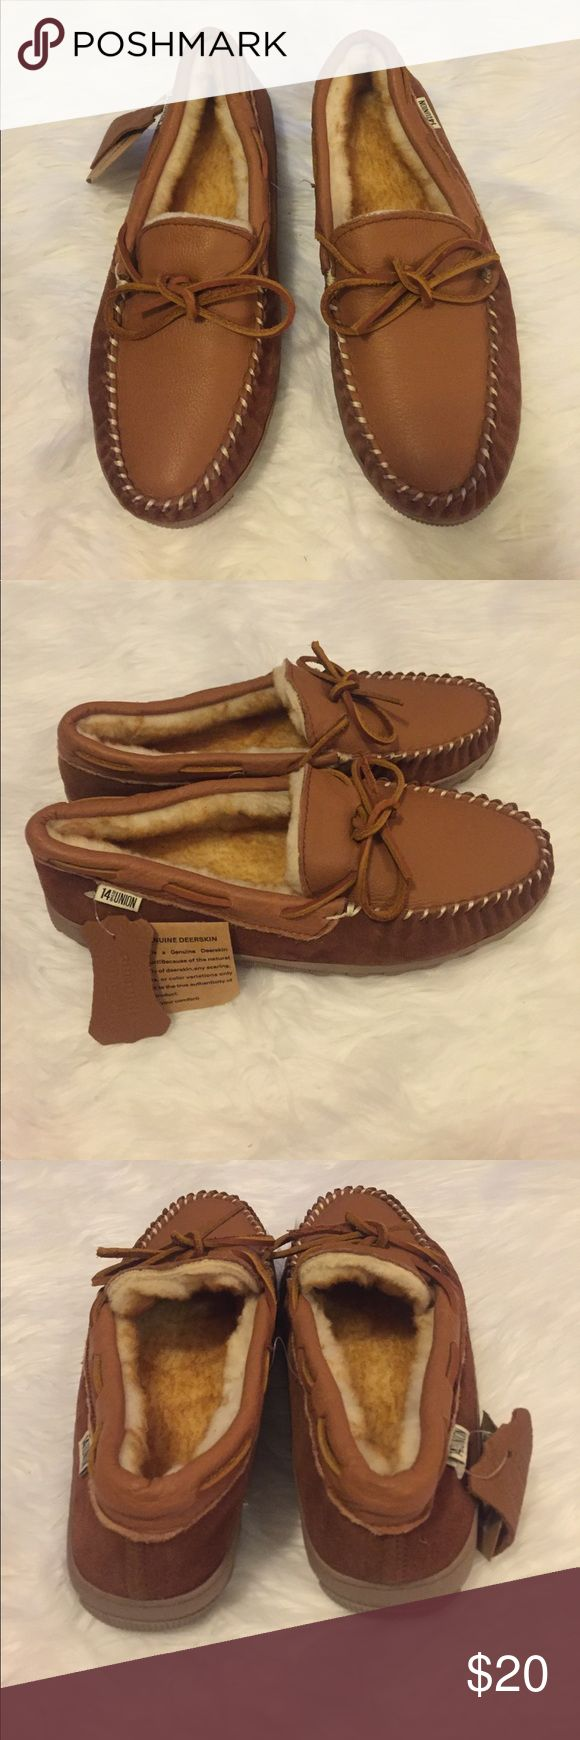 14th & Union Men's Moccasin Slippers 14th & Union Men's Moccasins Slippers. Size: 9. New with tags. 14th & Union Shoes